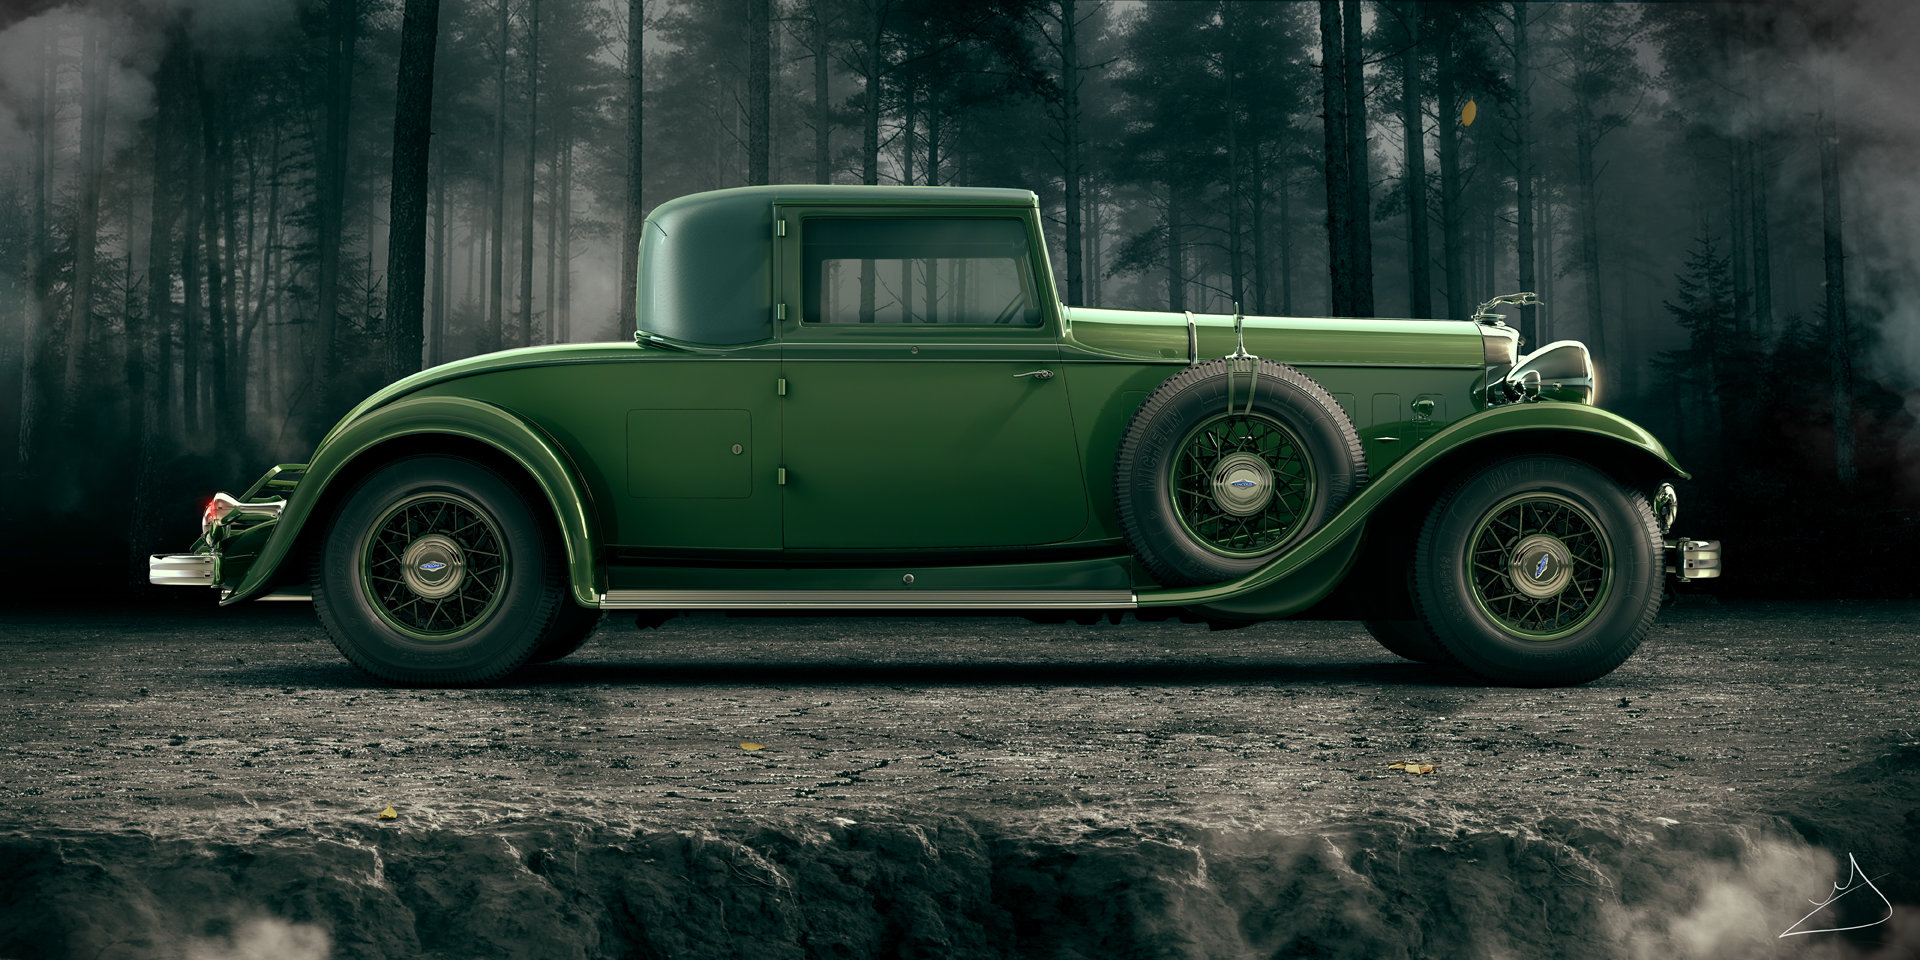 Alexandr novitskiy 1932 lincoln kb coupe 03